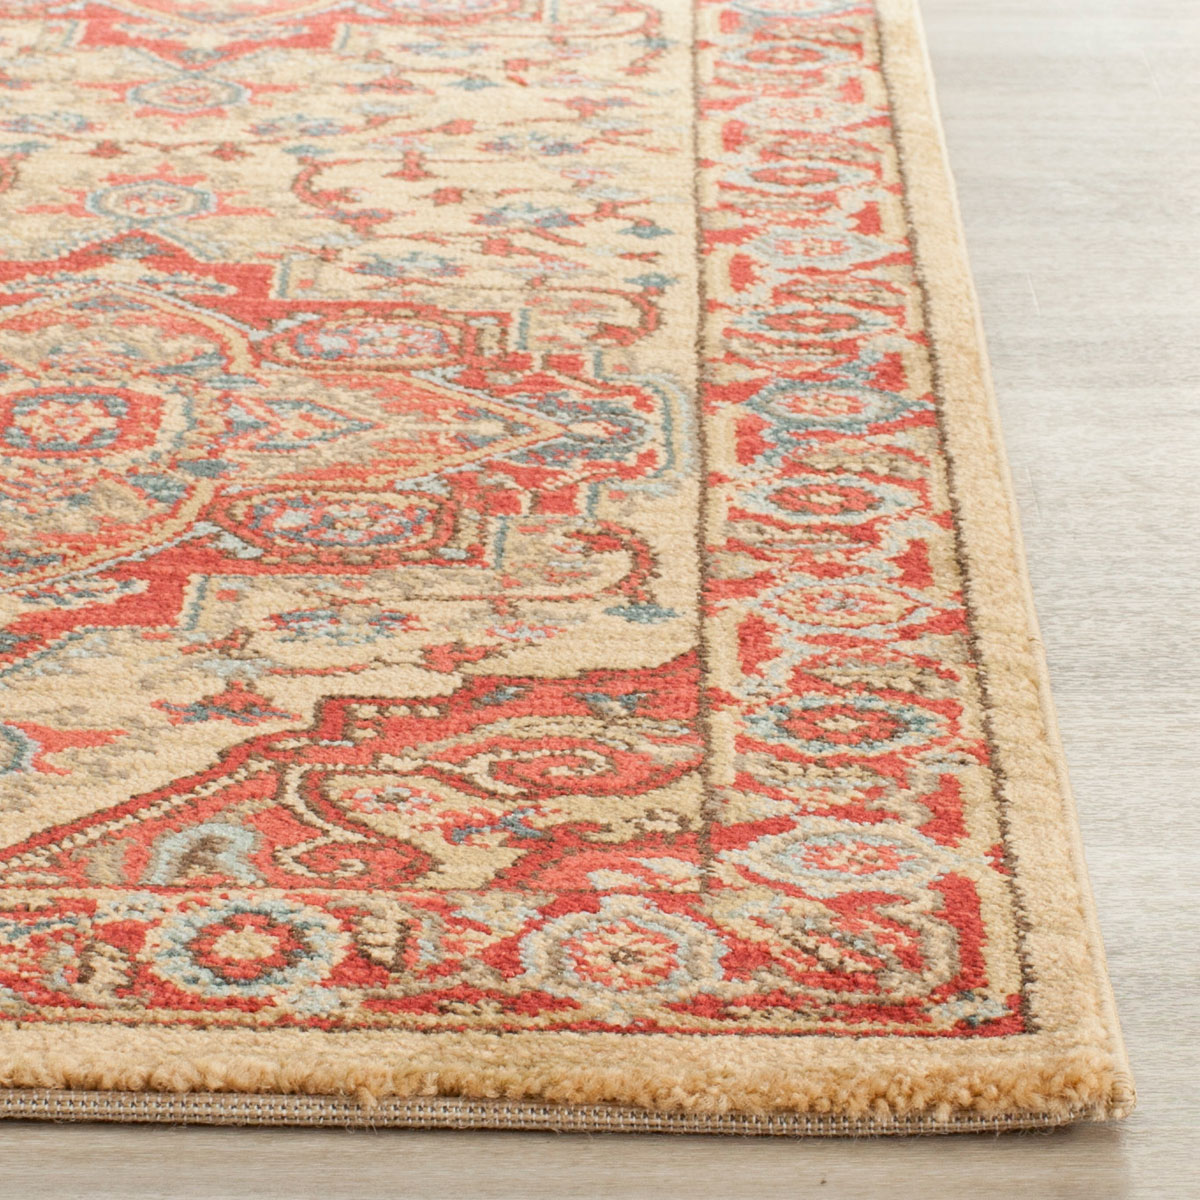 sign up for safavieh emails - Safavieh Rug